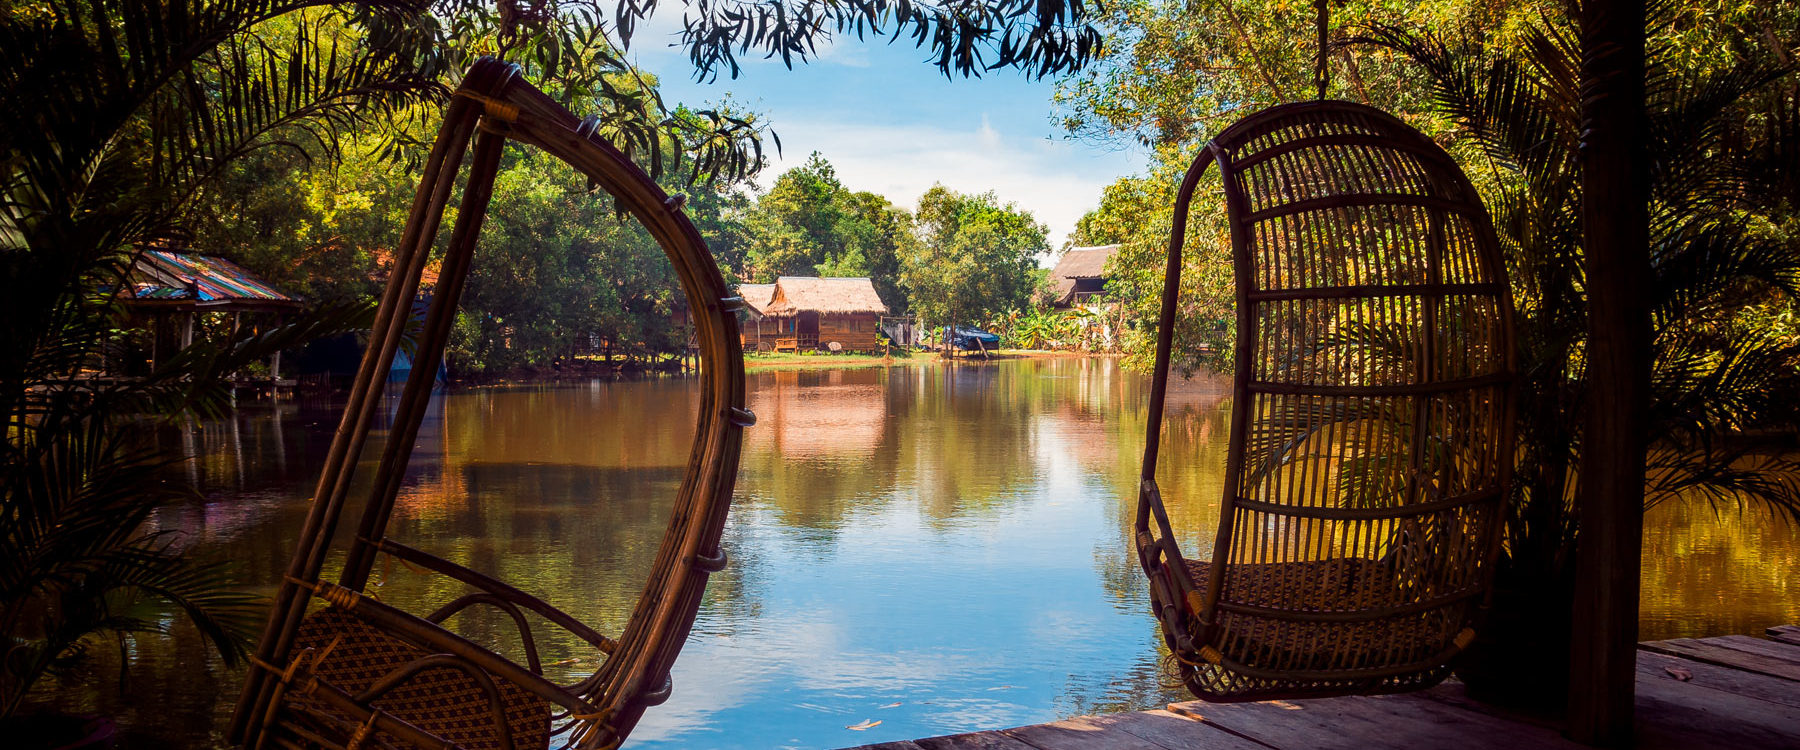 Relaxing area in the resort restaurant facing the Otres River at natural vegetation in Sok Sabay Resort, Otres Village - Cambodia.